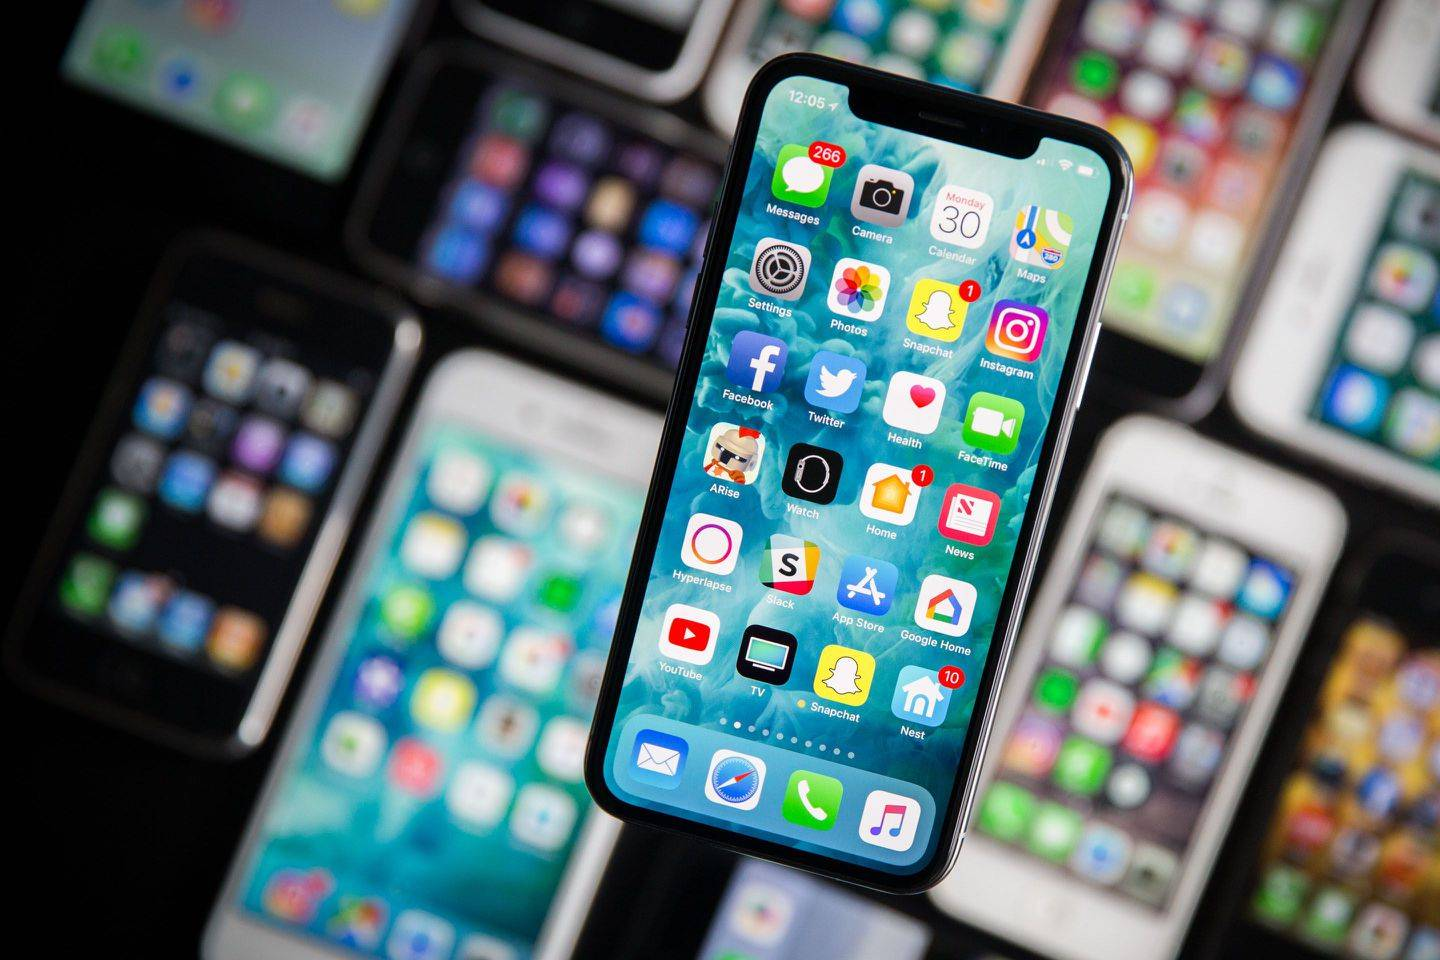 Iphone X Mobile Devices